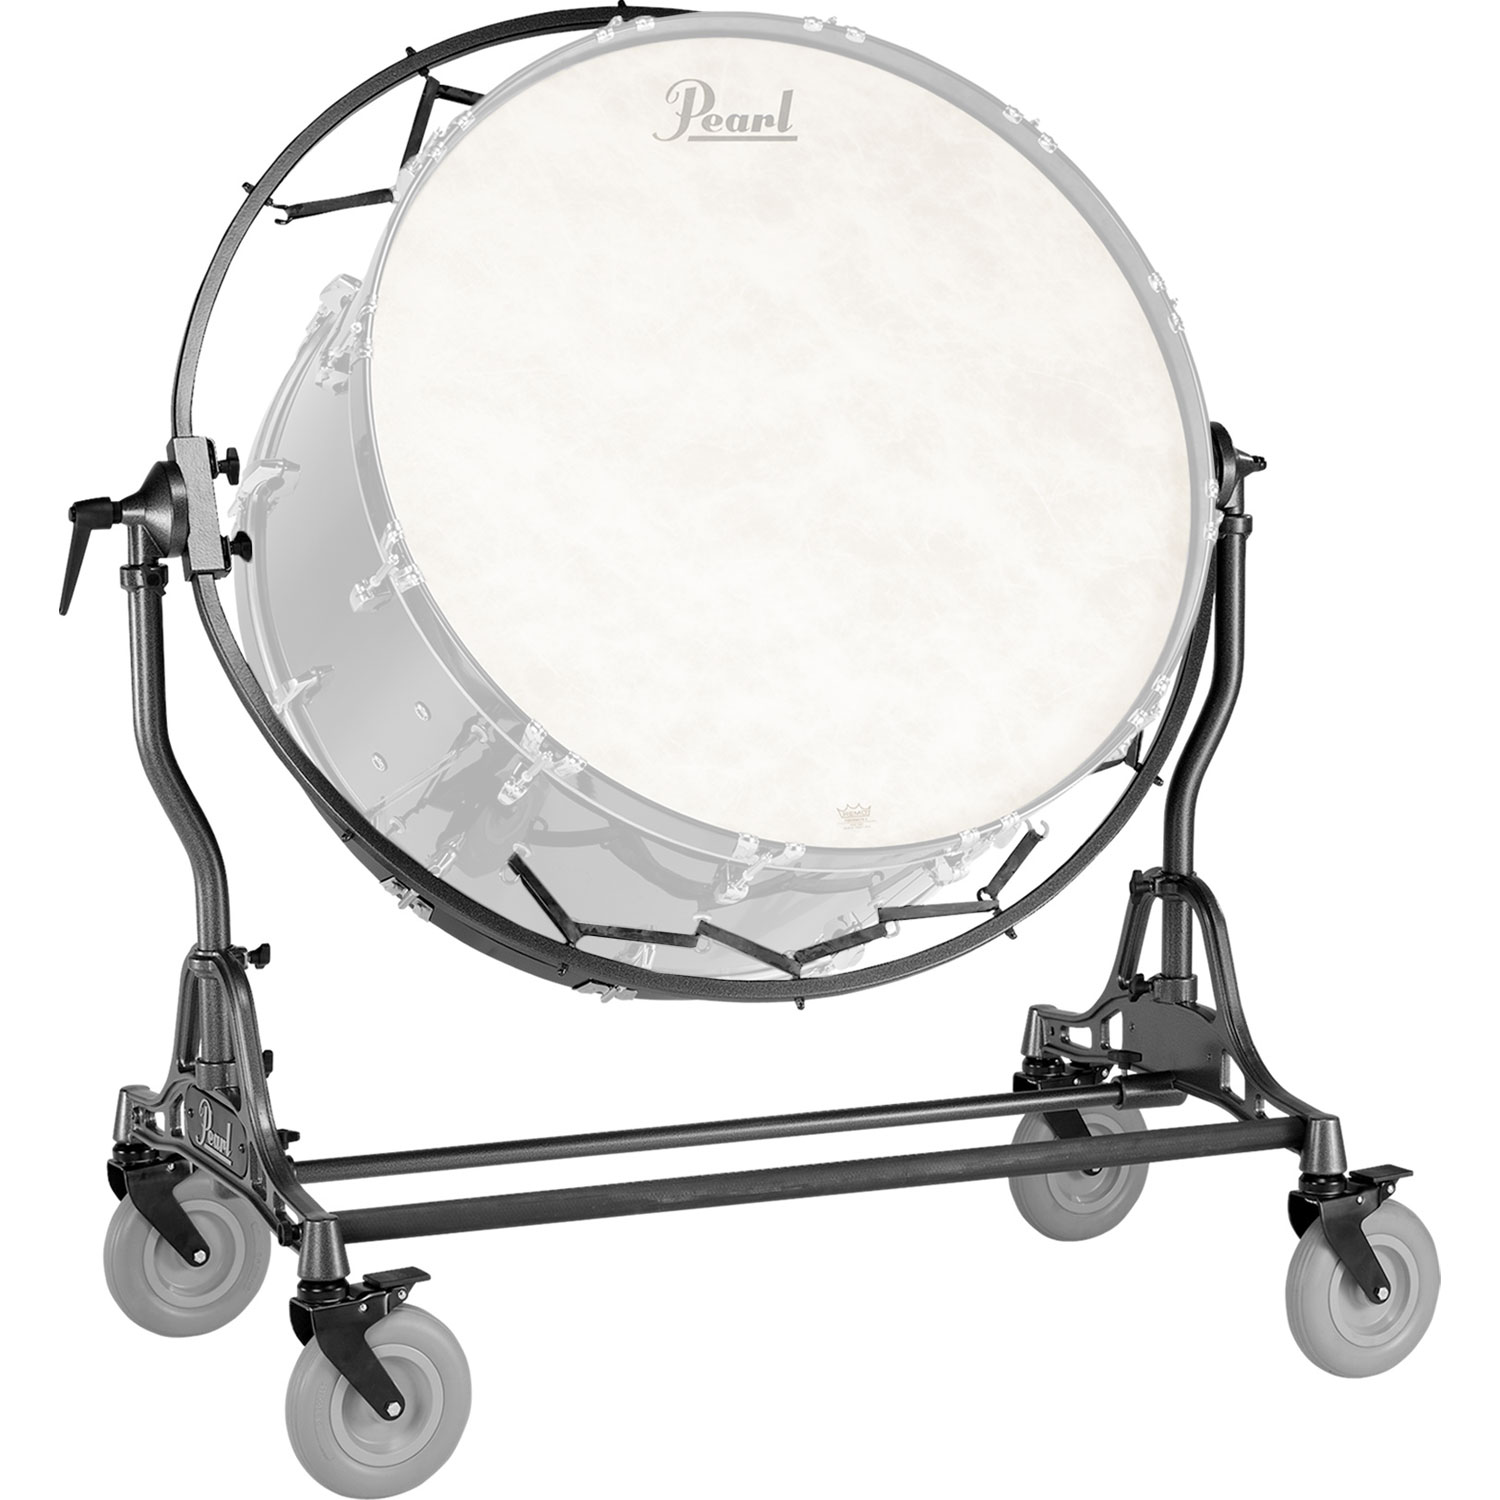 "Pearl STBD36F Suspended Stand for 36"" Bass Drum with Field Frame"